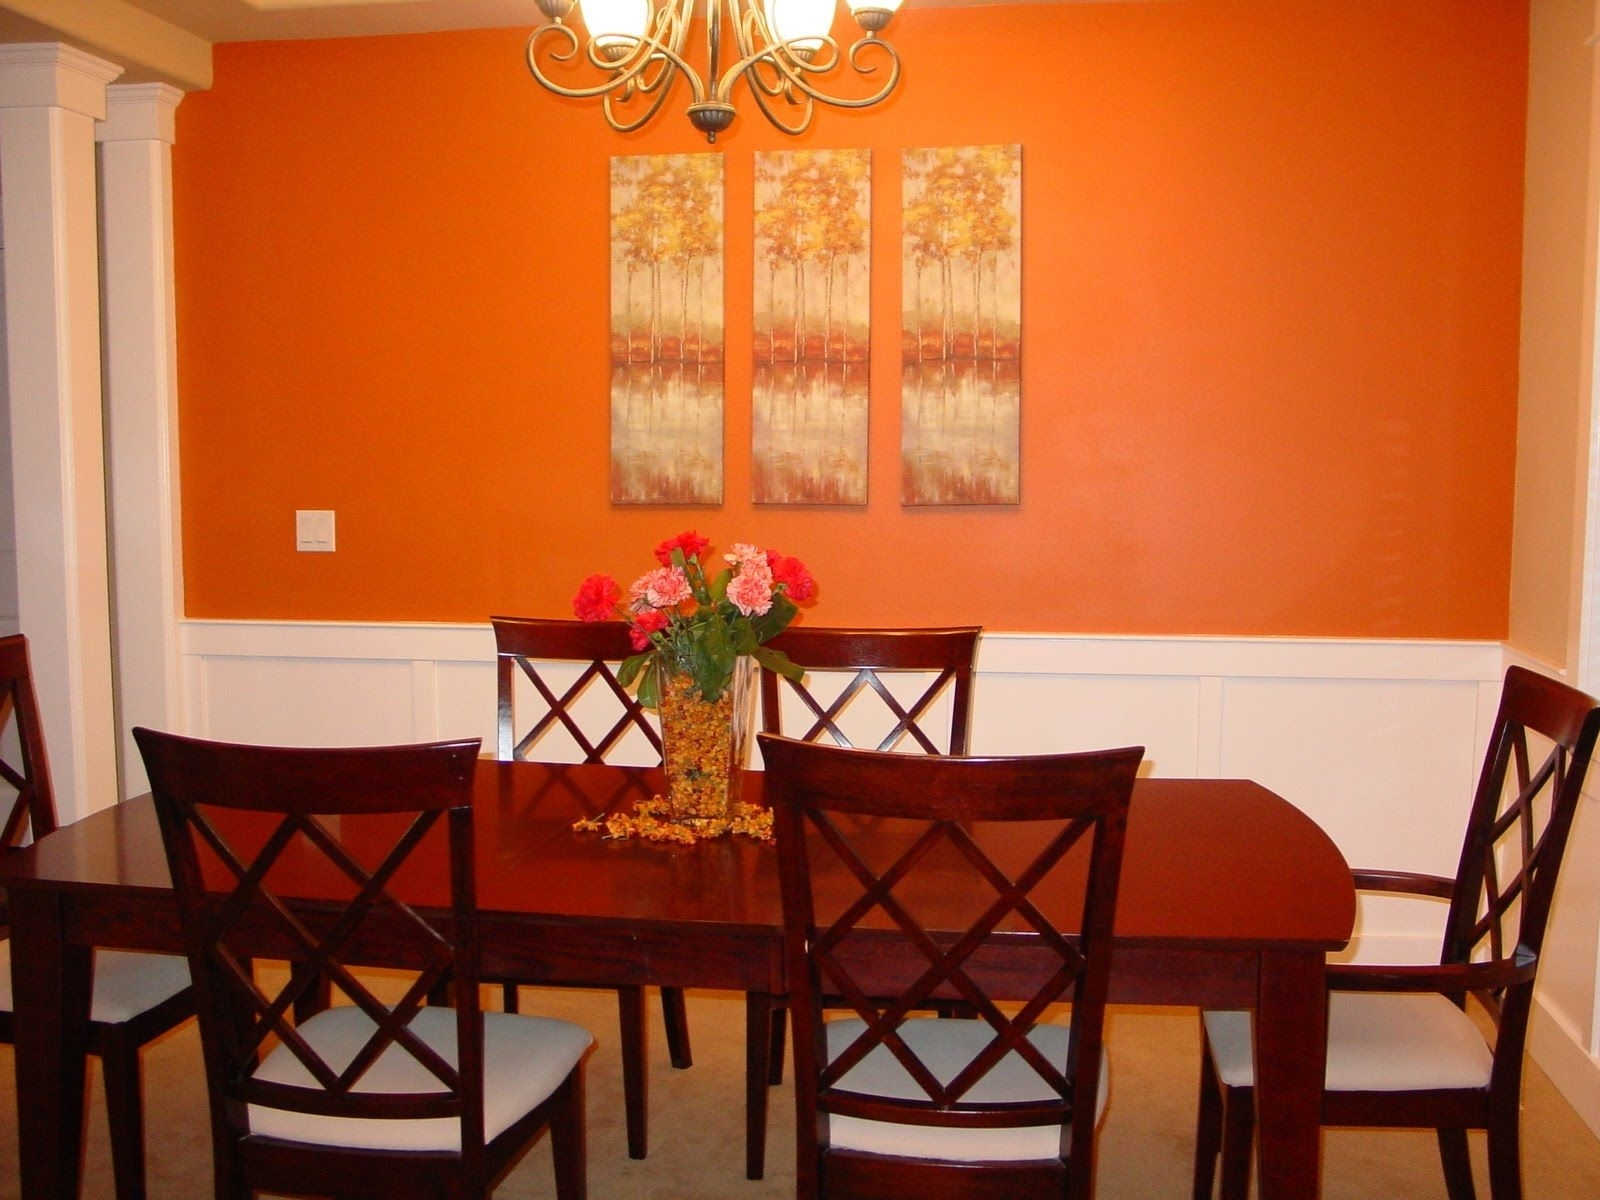 Dining Room Paint Ideas With Accent Wall Odqeaih New Home Rule In 2017 Dining Room Wall Accents (View 15 of 15)